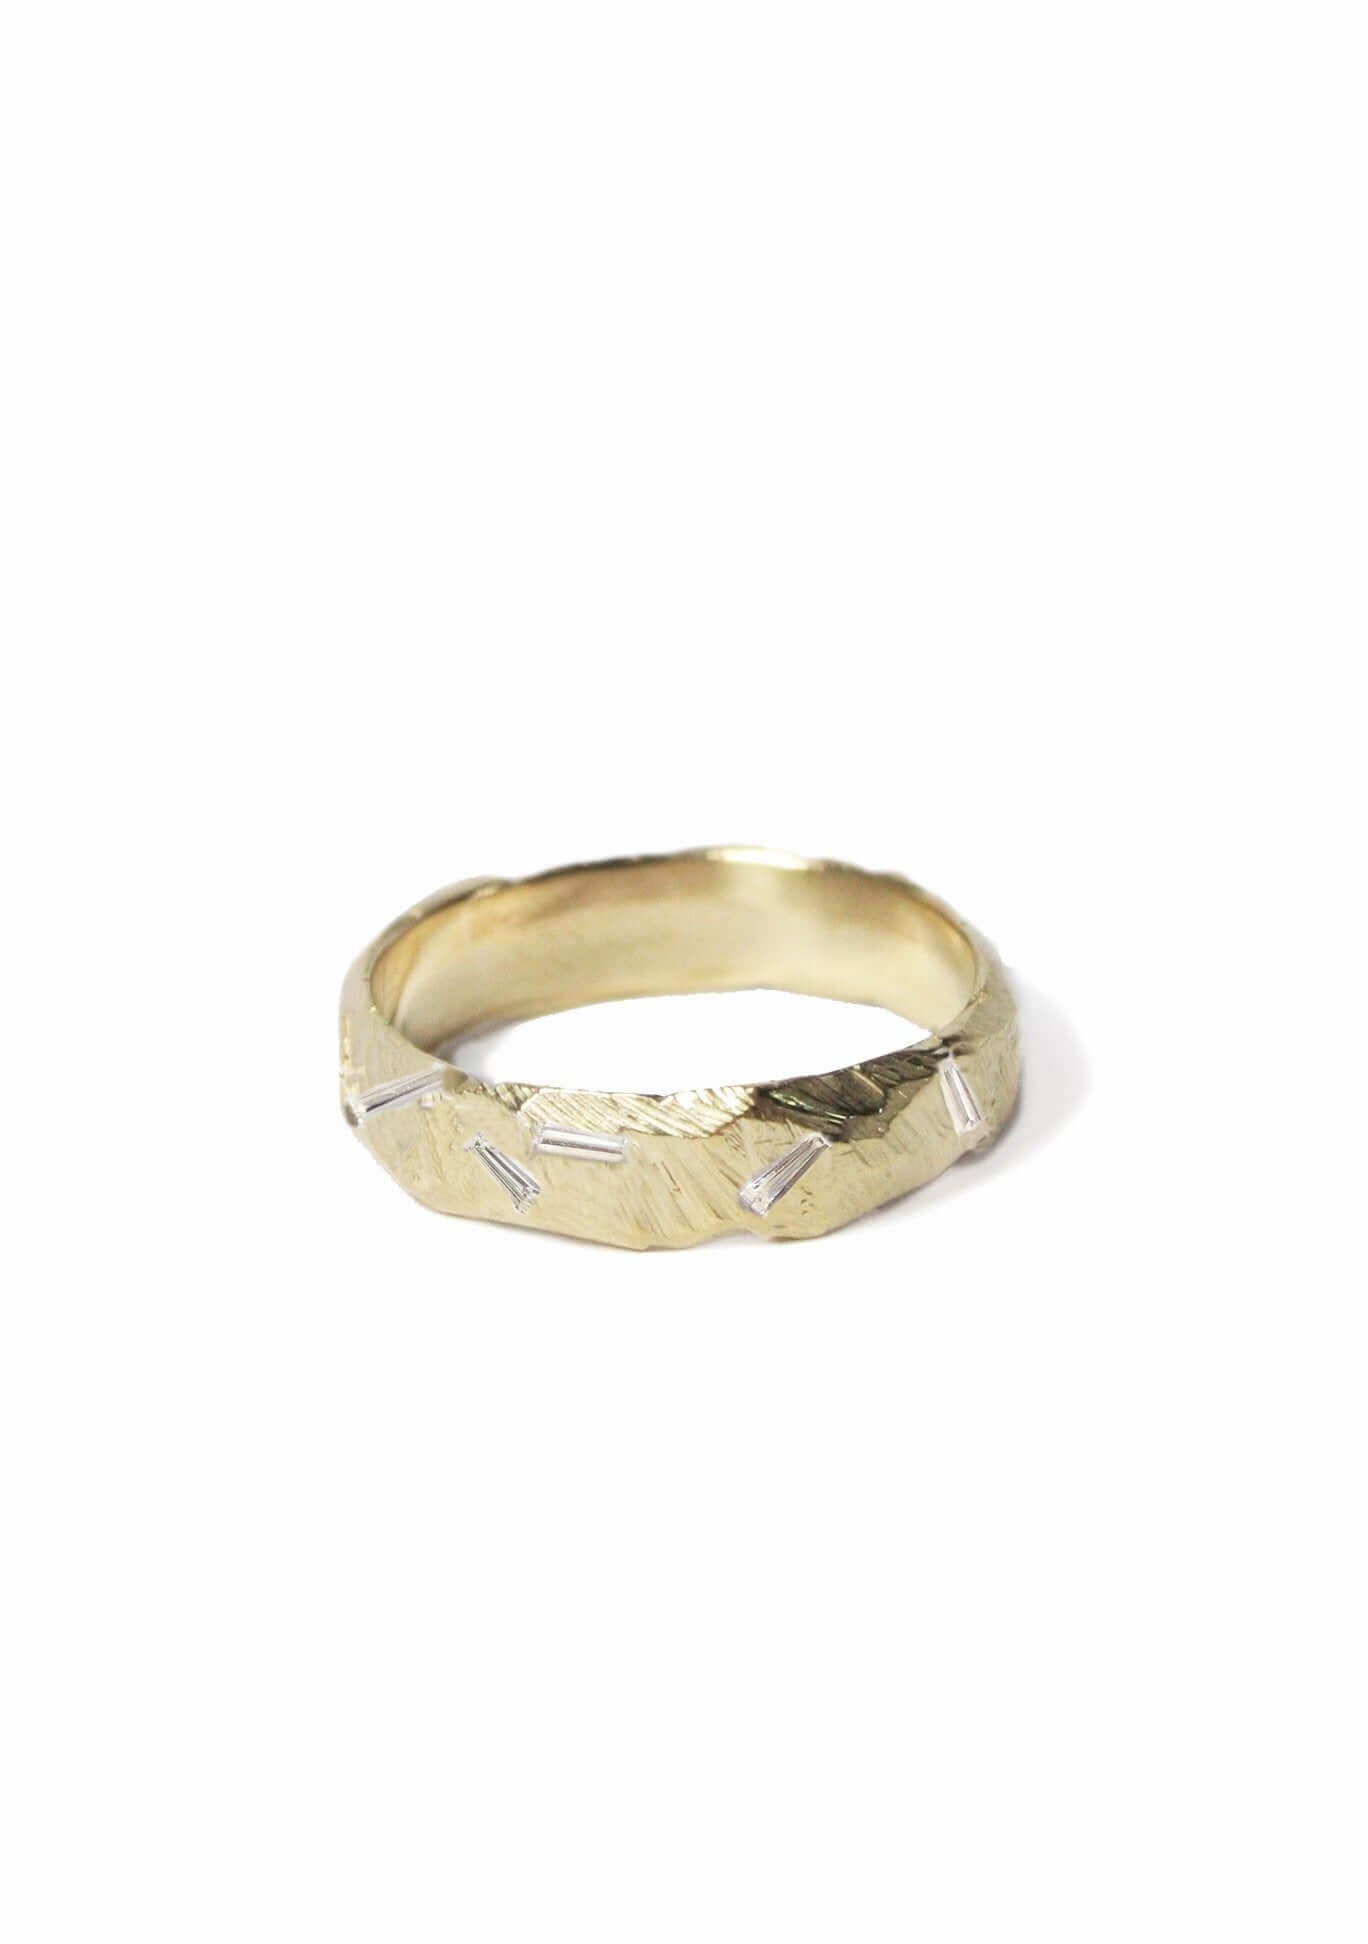 Ragged Wedding Band with tapered diamond baguettes 14k yellow gold